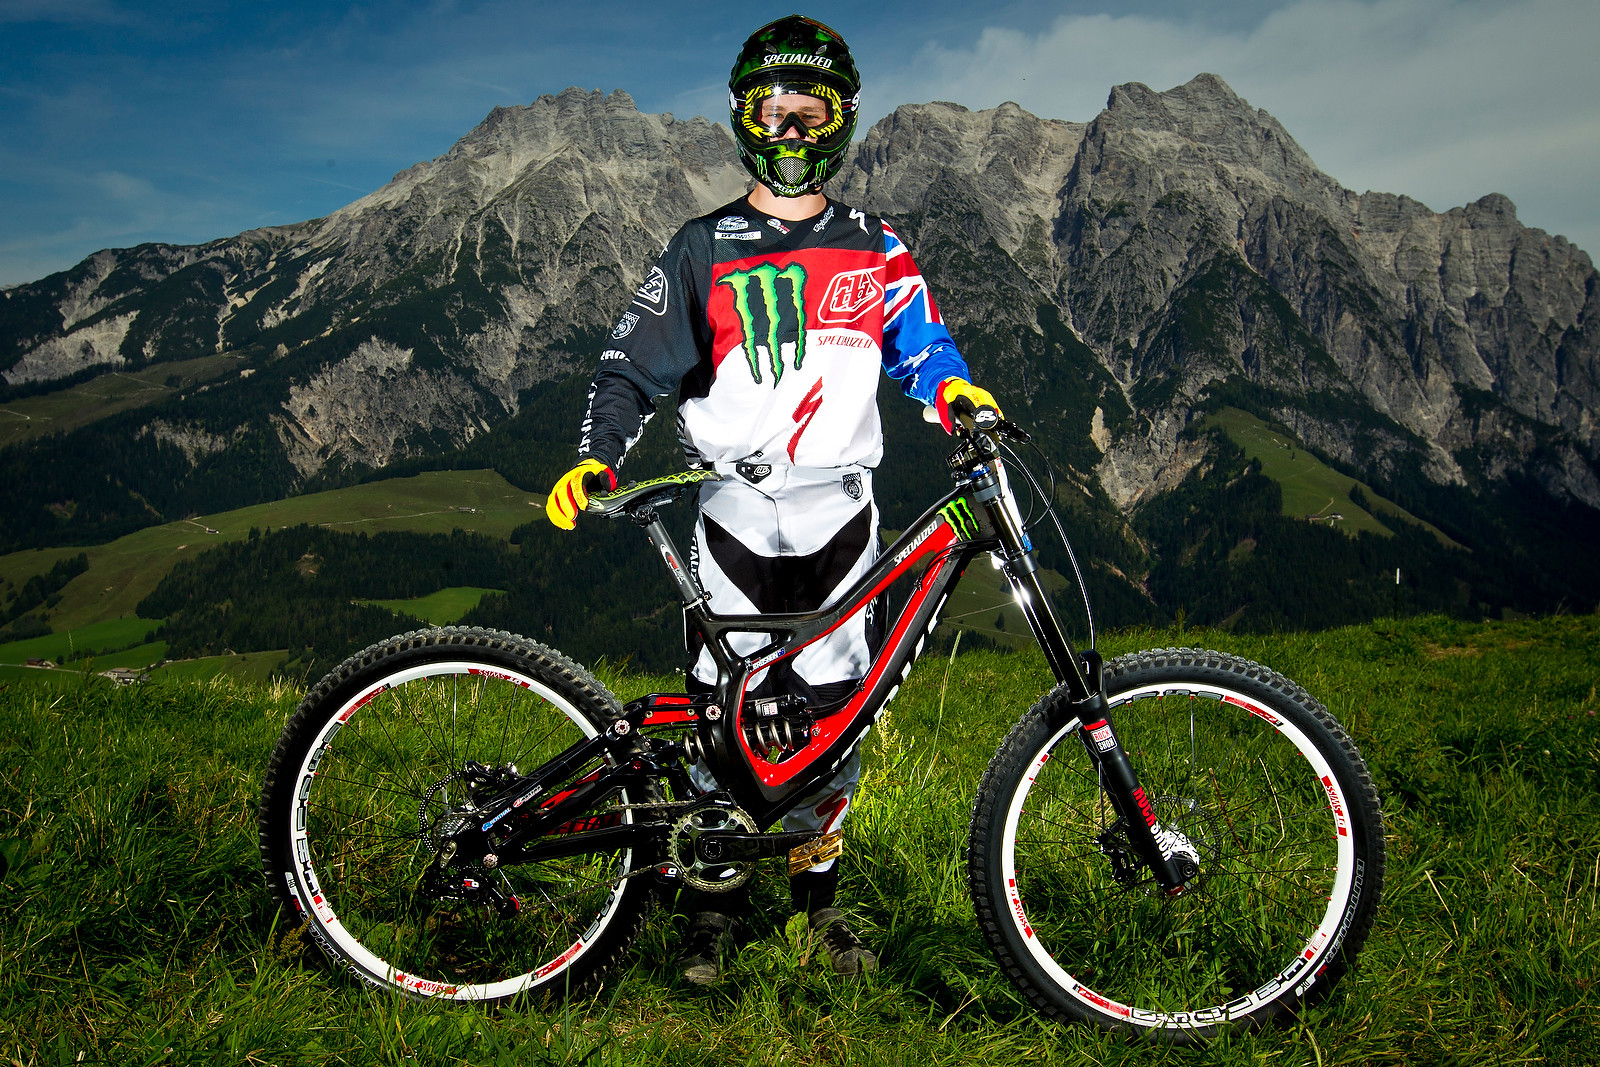 Troy Brosnan with his Specialized S-Works Demo 8 - World Championships Riders and Bikes - Mountain Biking Pictures - Vital MTB